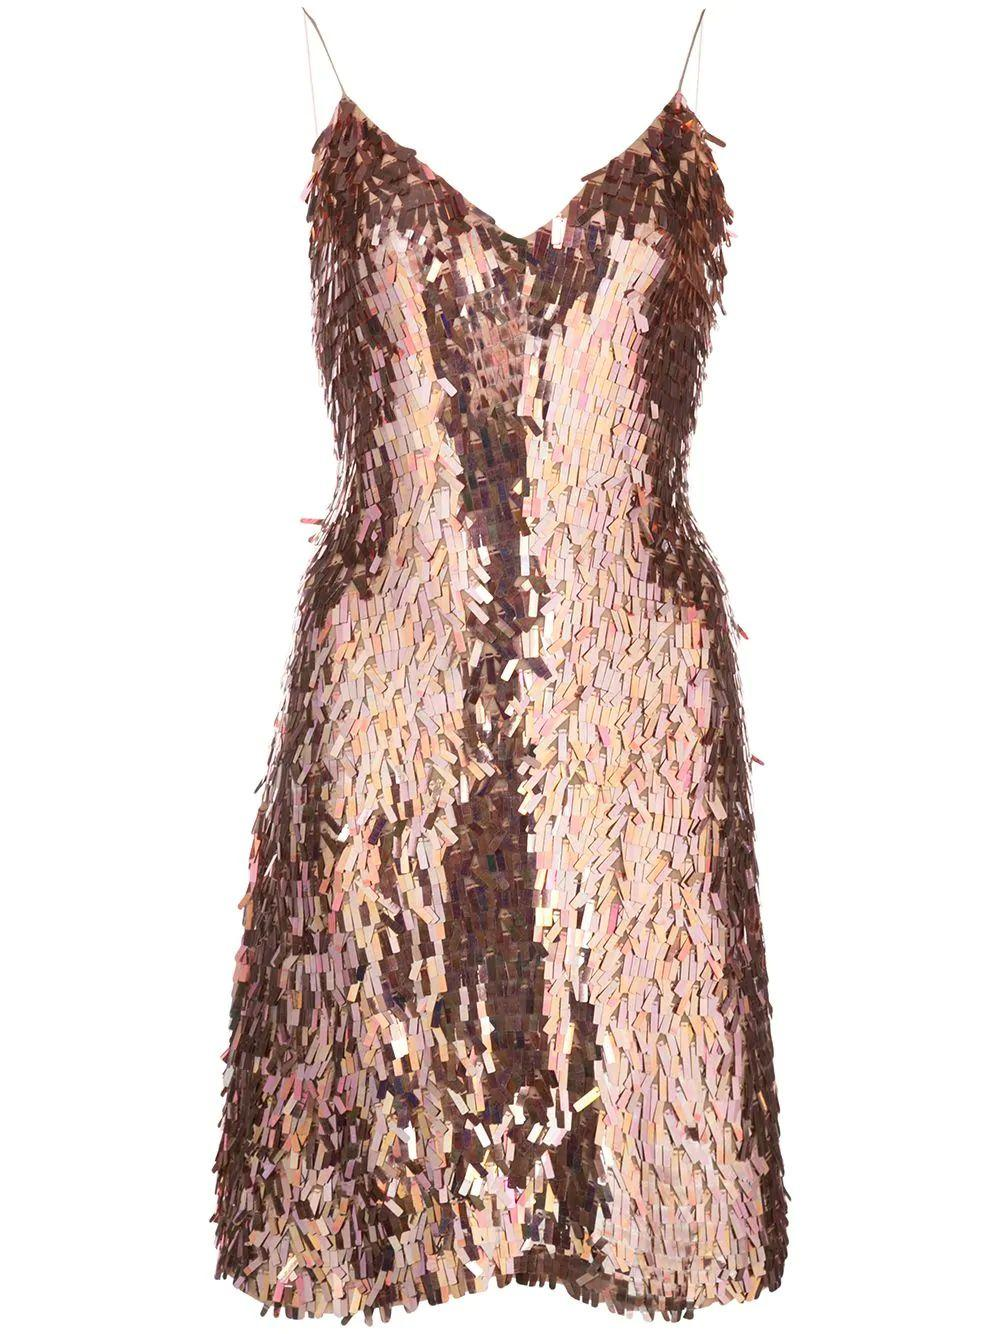 Contessa Fringe Sequin Strappy Dress Item # CC911E30521